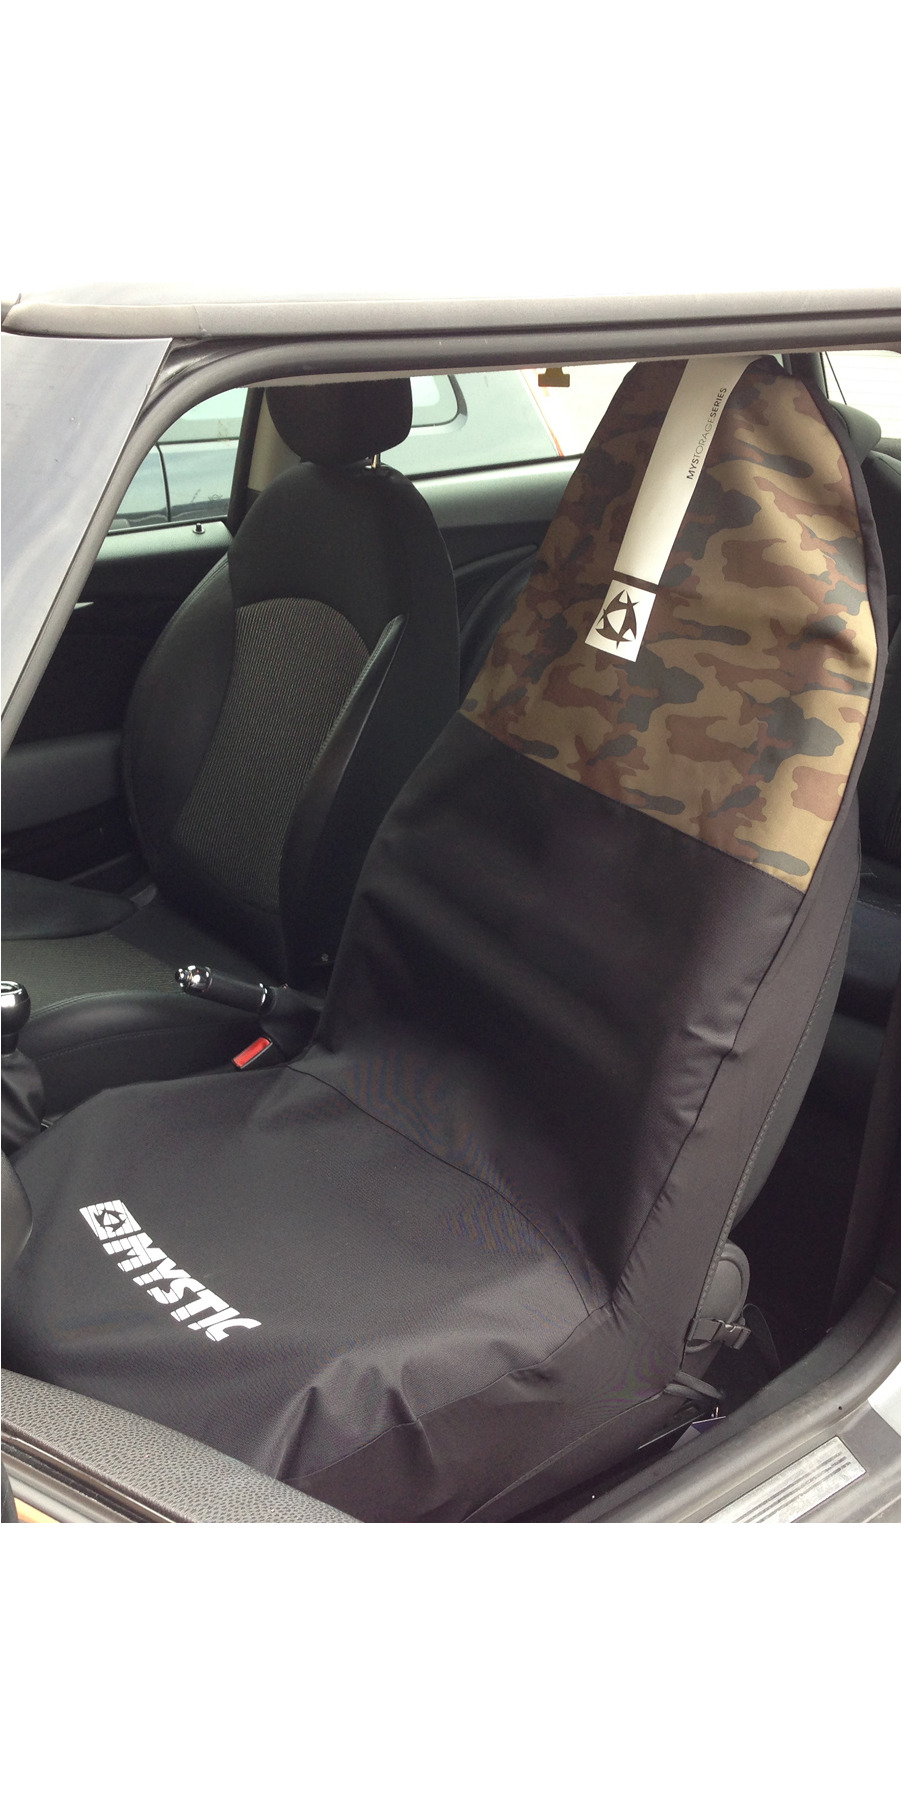 2018 Mystic Car Seat Cover Single Black Camo 150325 150325 By Mystic Mystic Car Seat